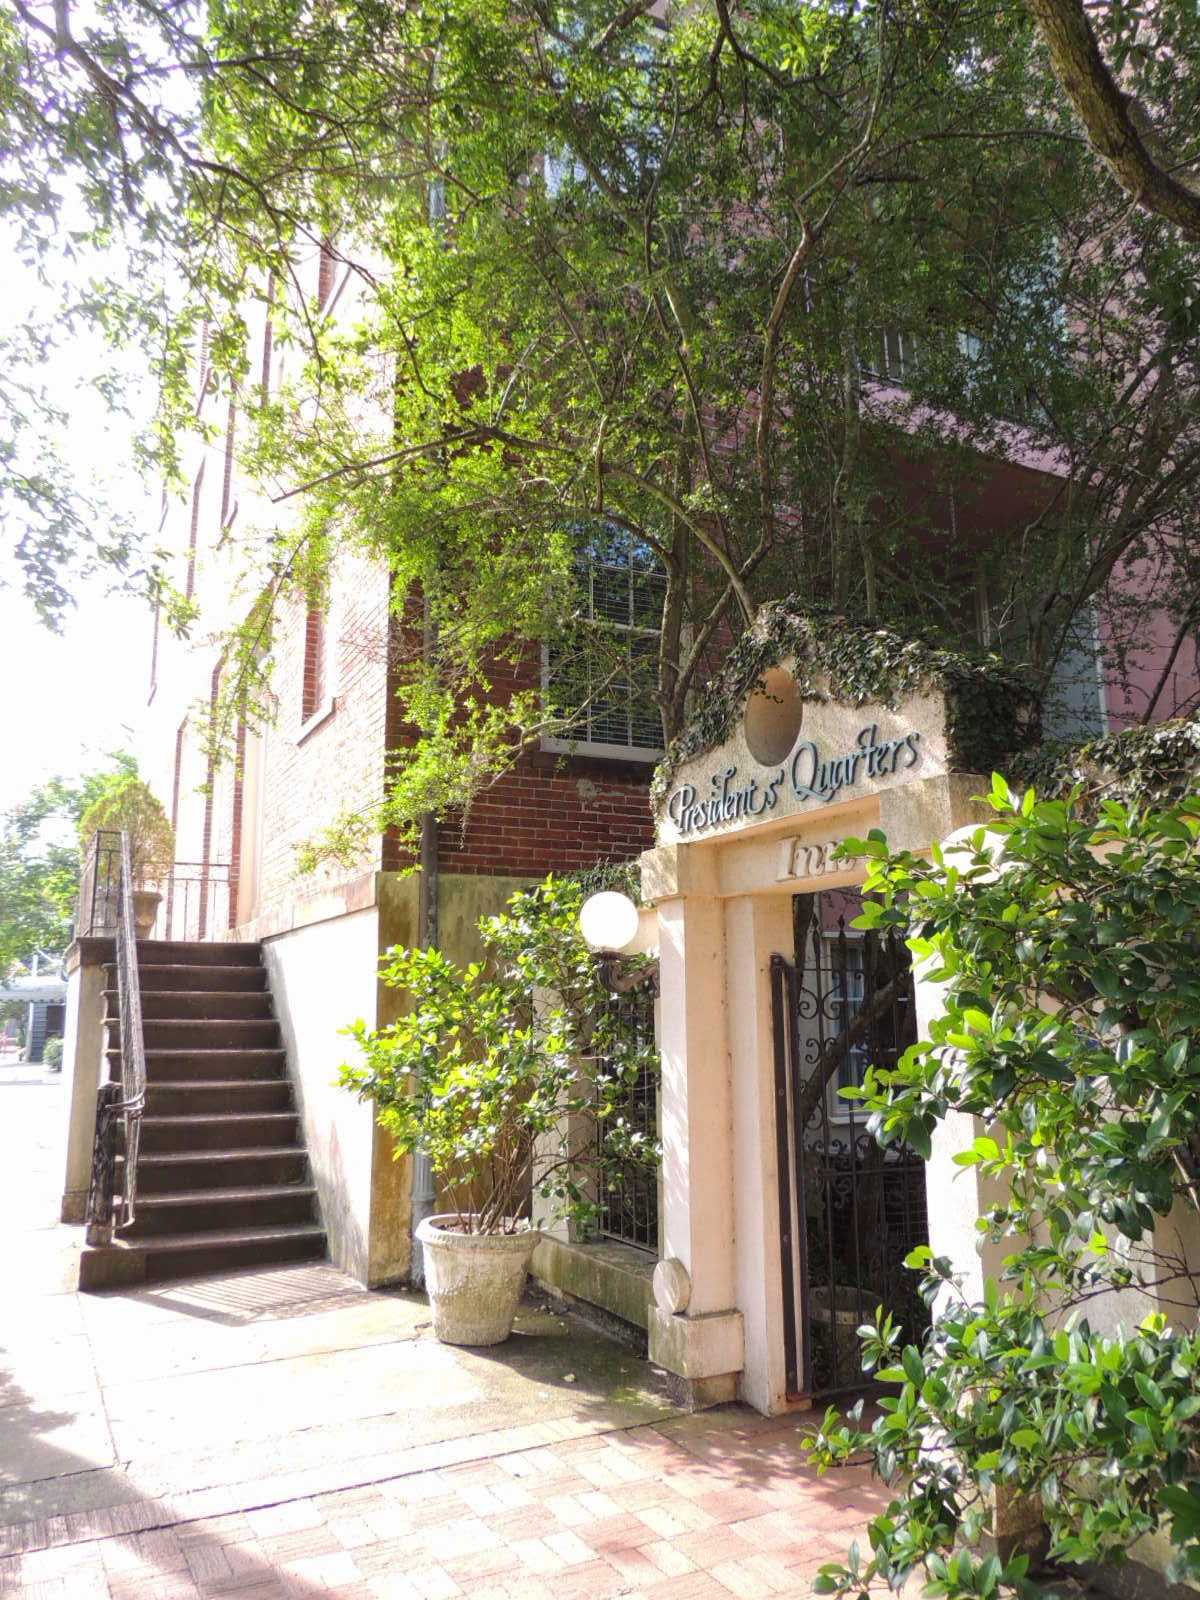 The Presidents' Quarters Inn is a charming, family friendly bed & breakfast located in the heart of Savannah, Georgia's historic district.